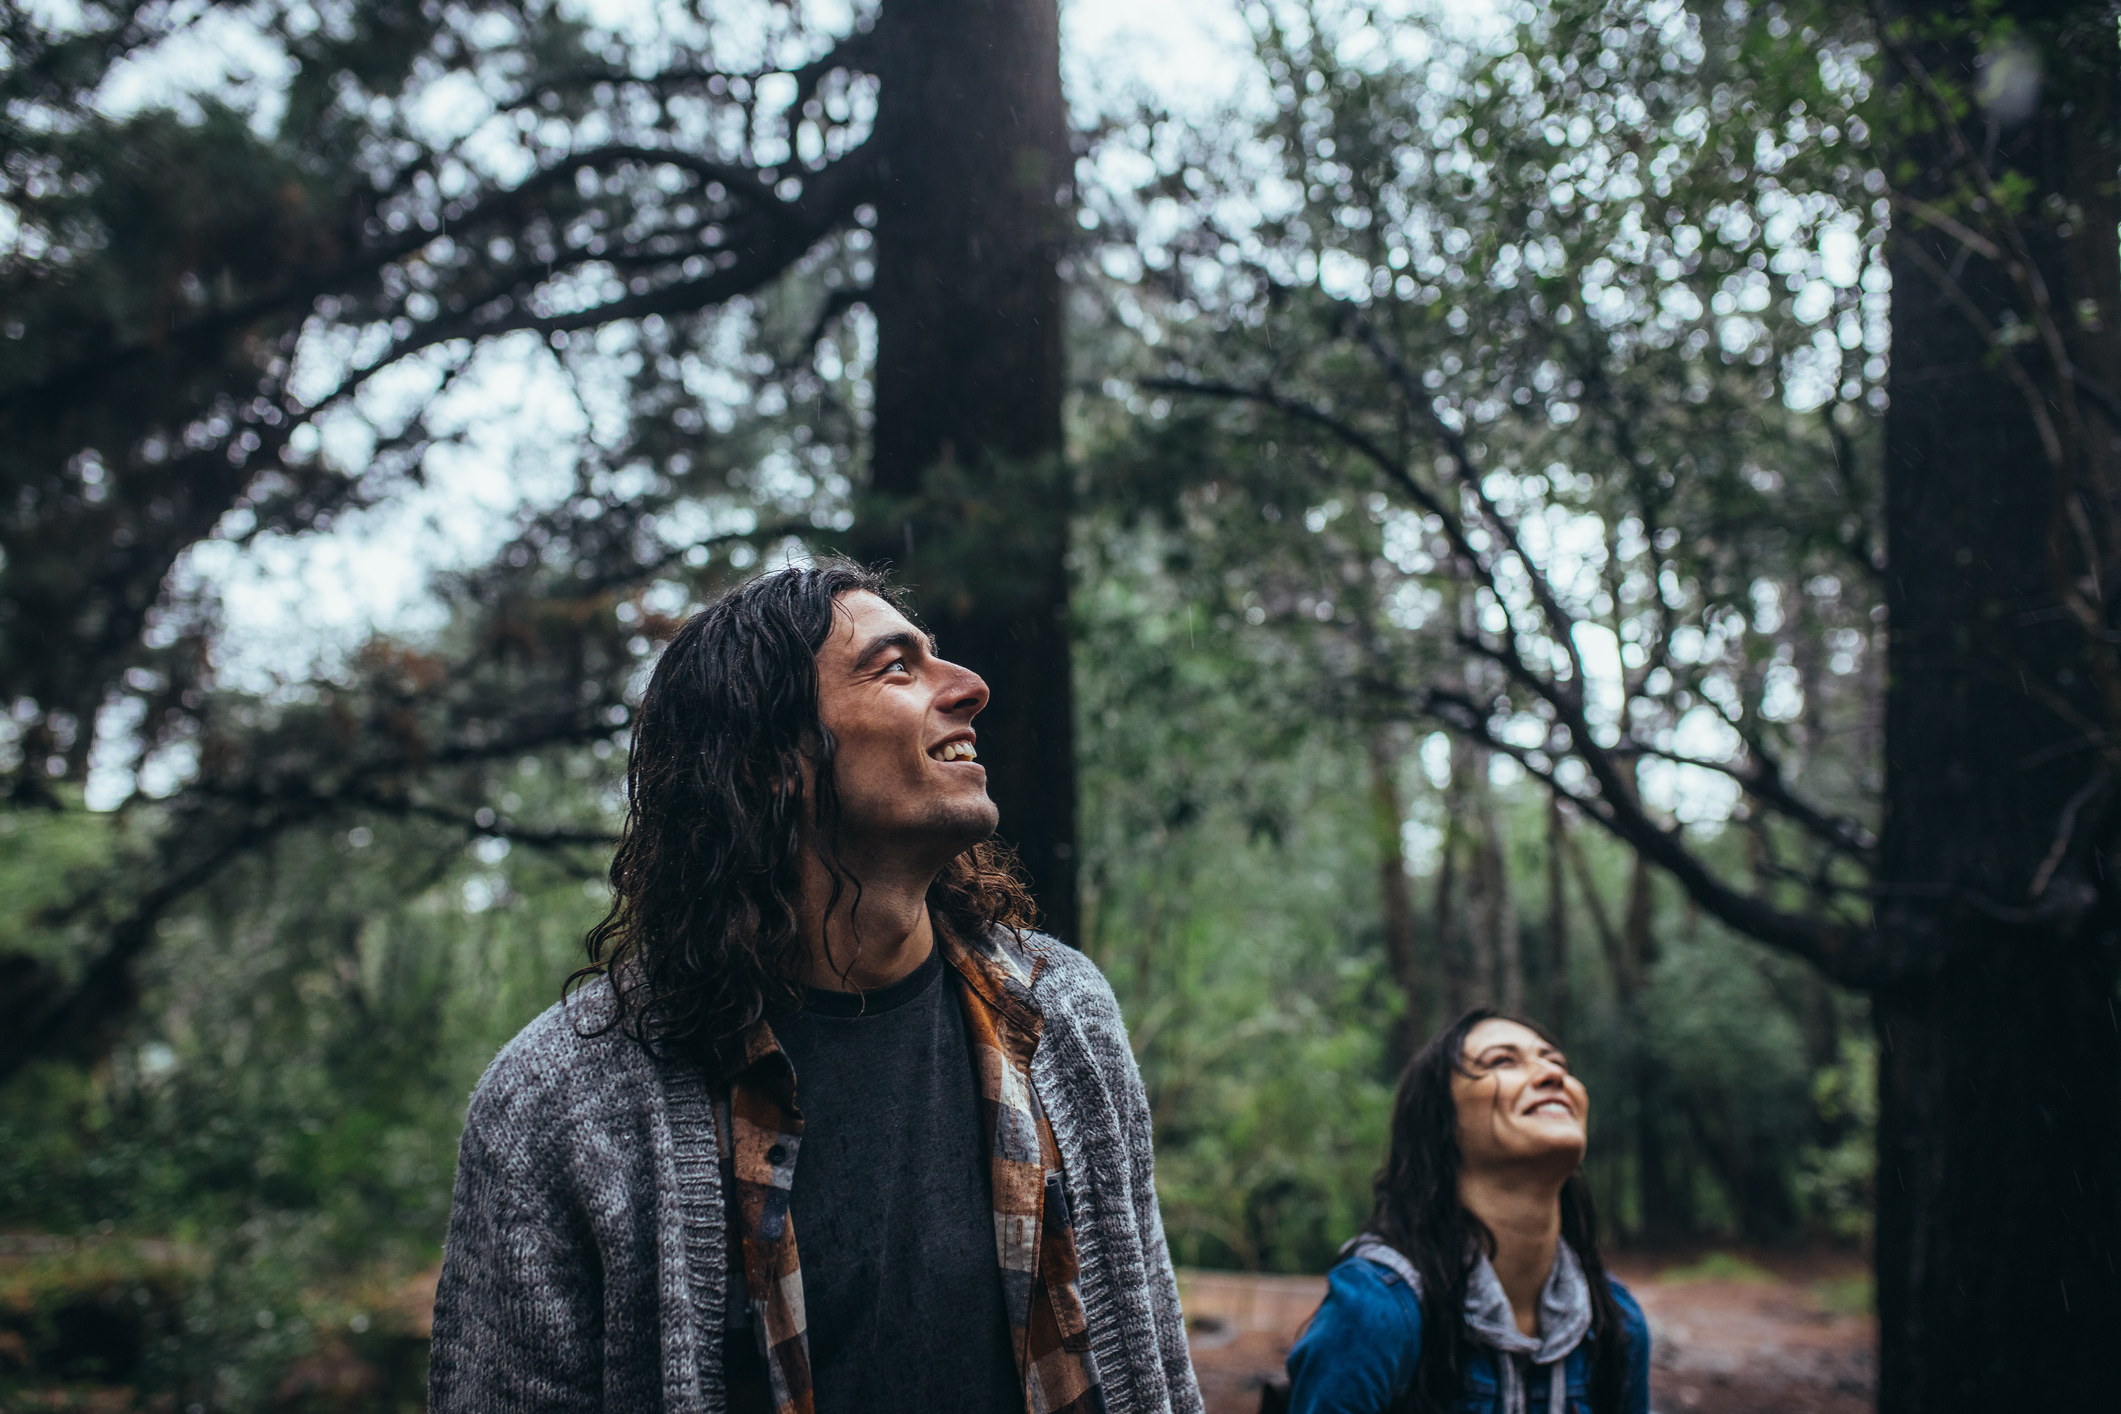 Young man in forest with her girlfriend at the back enjoying the view. Man admiring the nature with woman at back in forest.